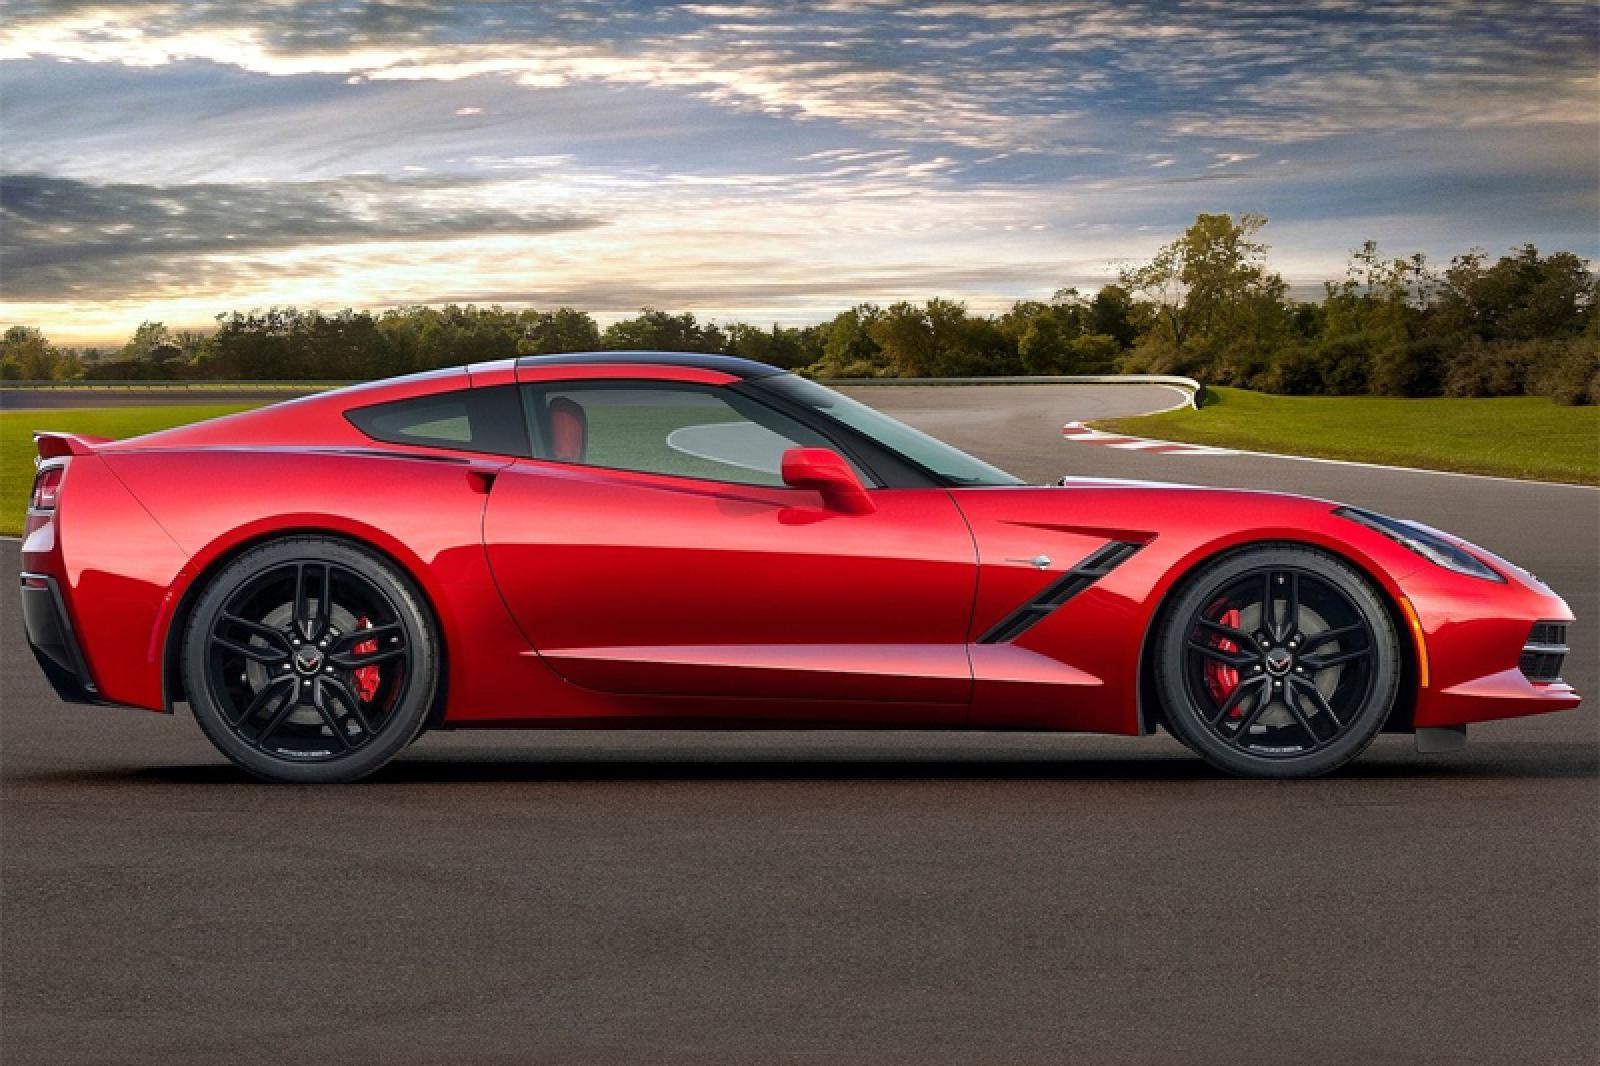 ... 2014 Chevrolet Corvette Stingray #7 800 1024 1280 1600 Origin ...